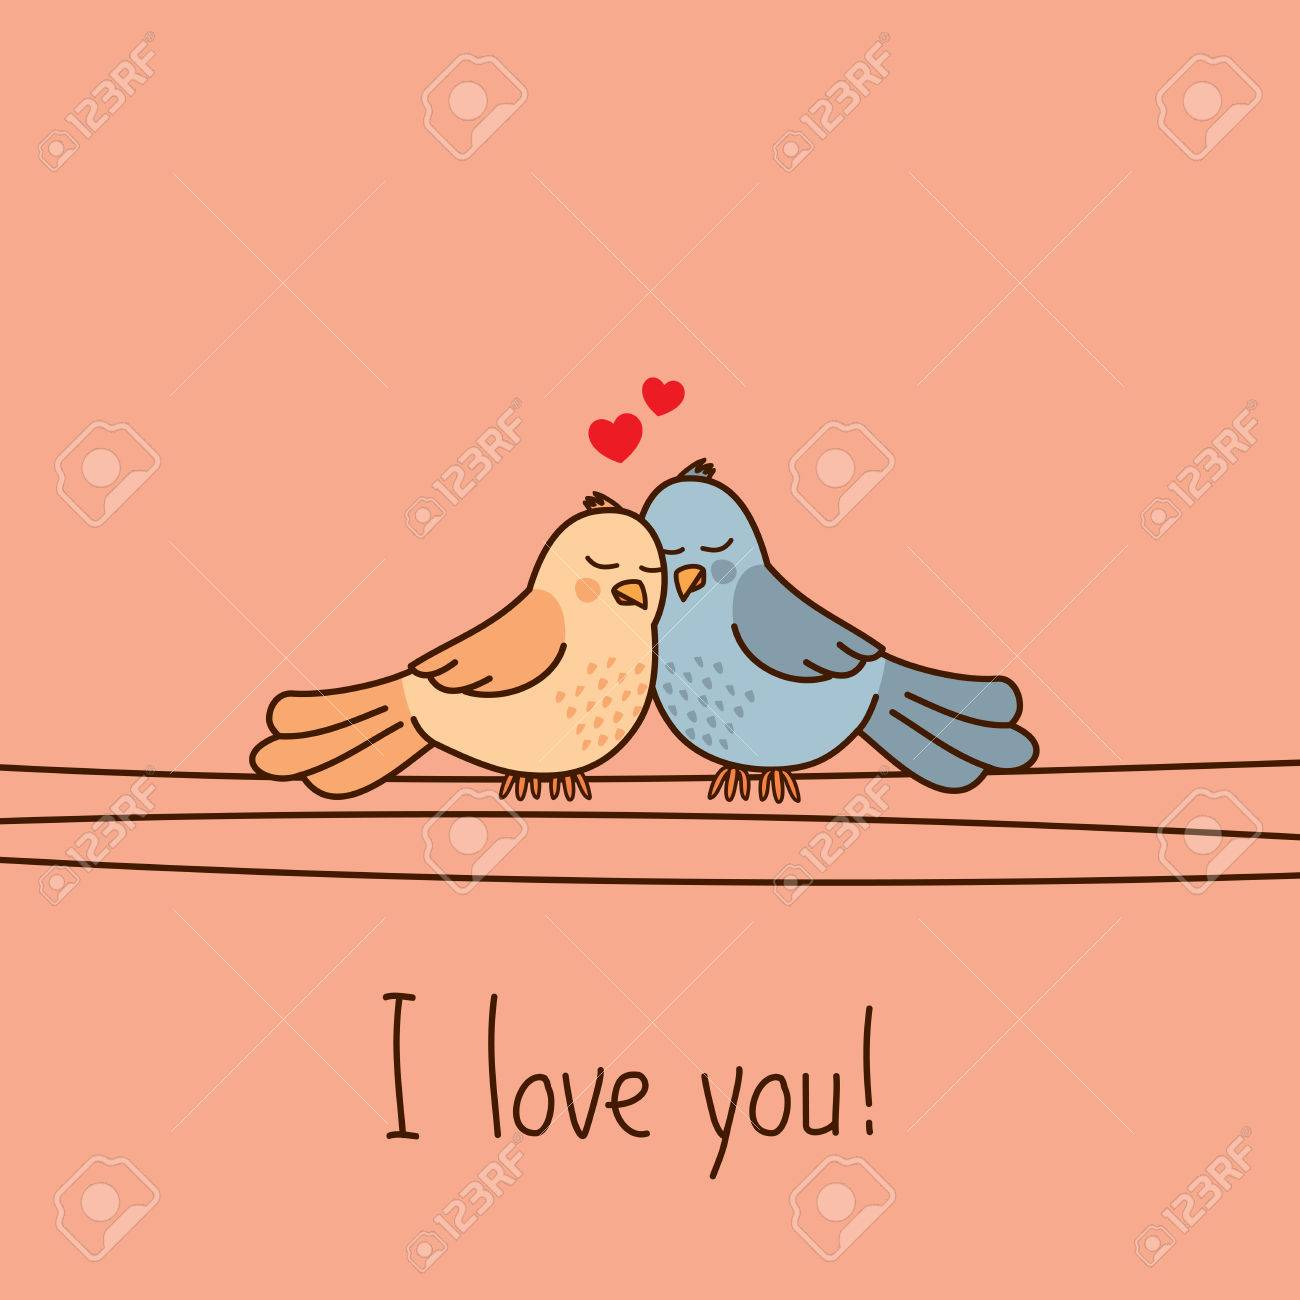 Valentine S Day Greeting Card With Two Cute Cartoon Love Birds Stock